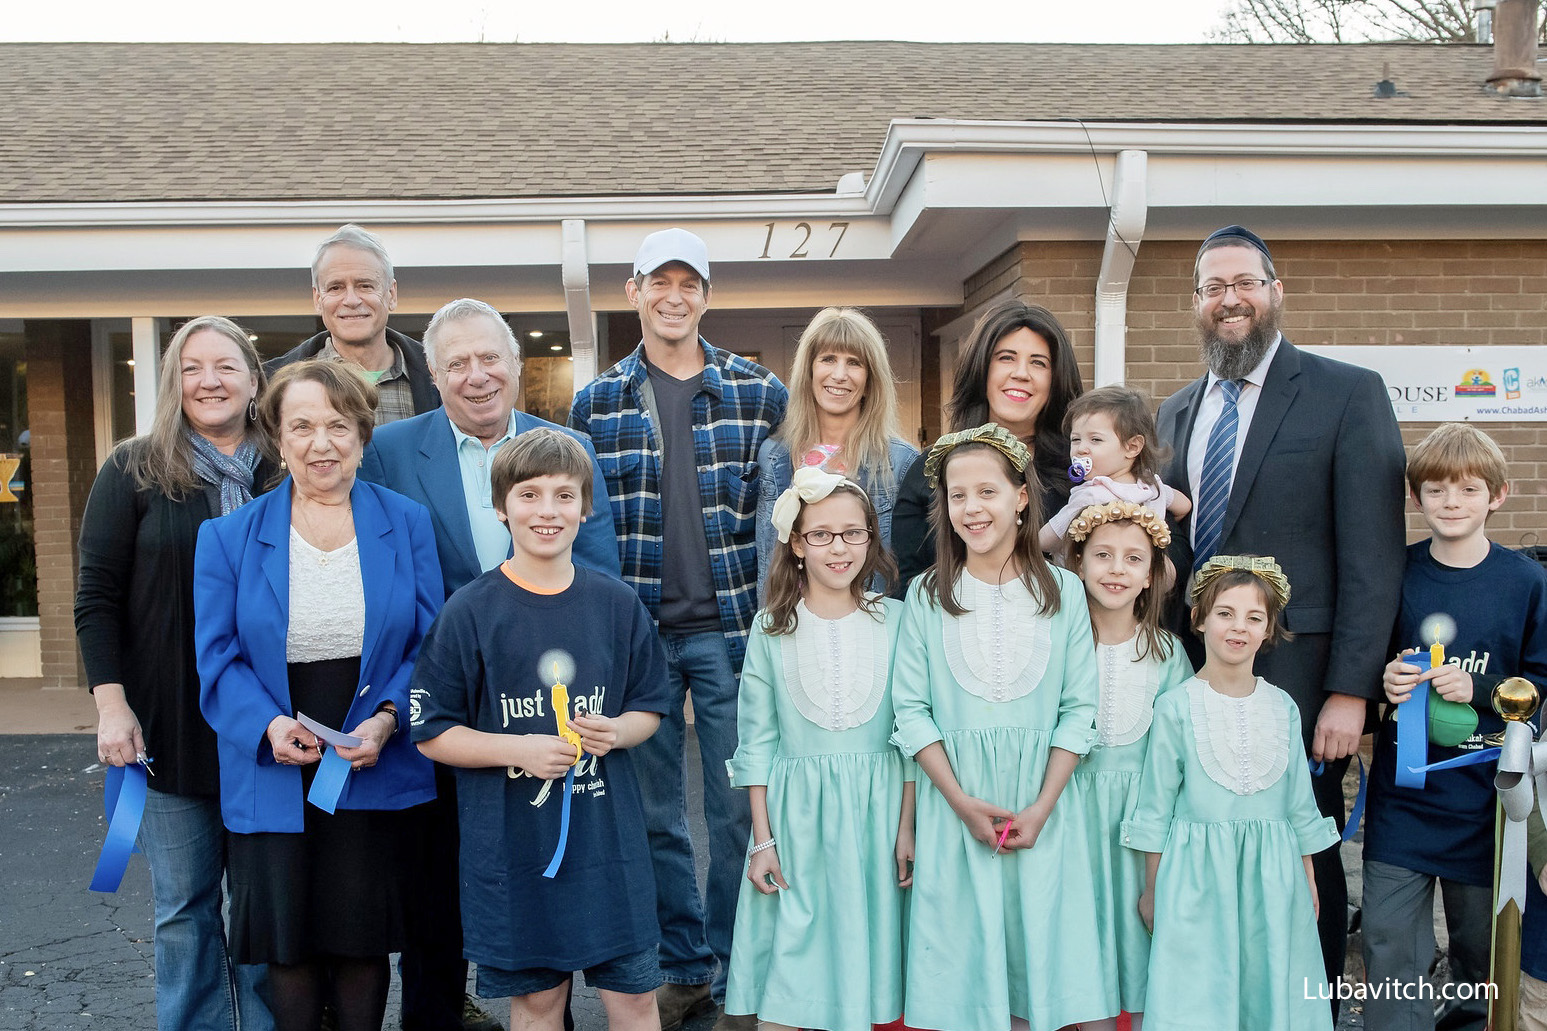 The Susskind family pose with dignitaries at the Grand Opening of Chabad House of Asheville, North Carolina